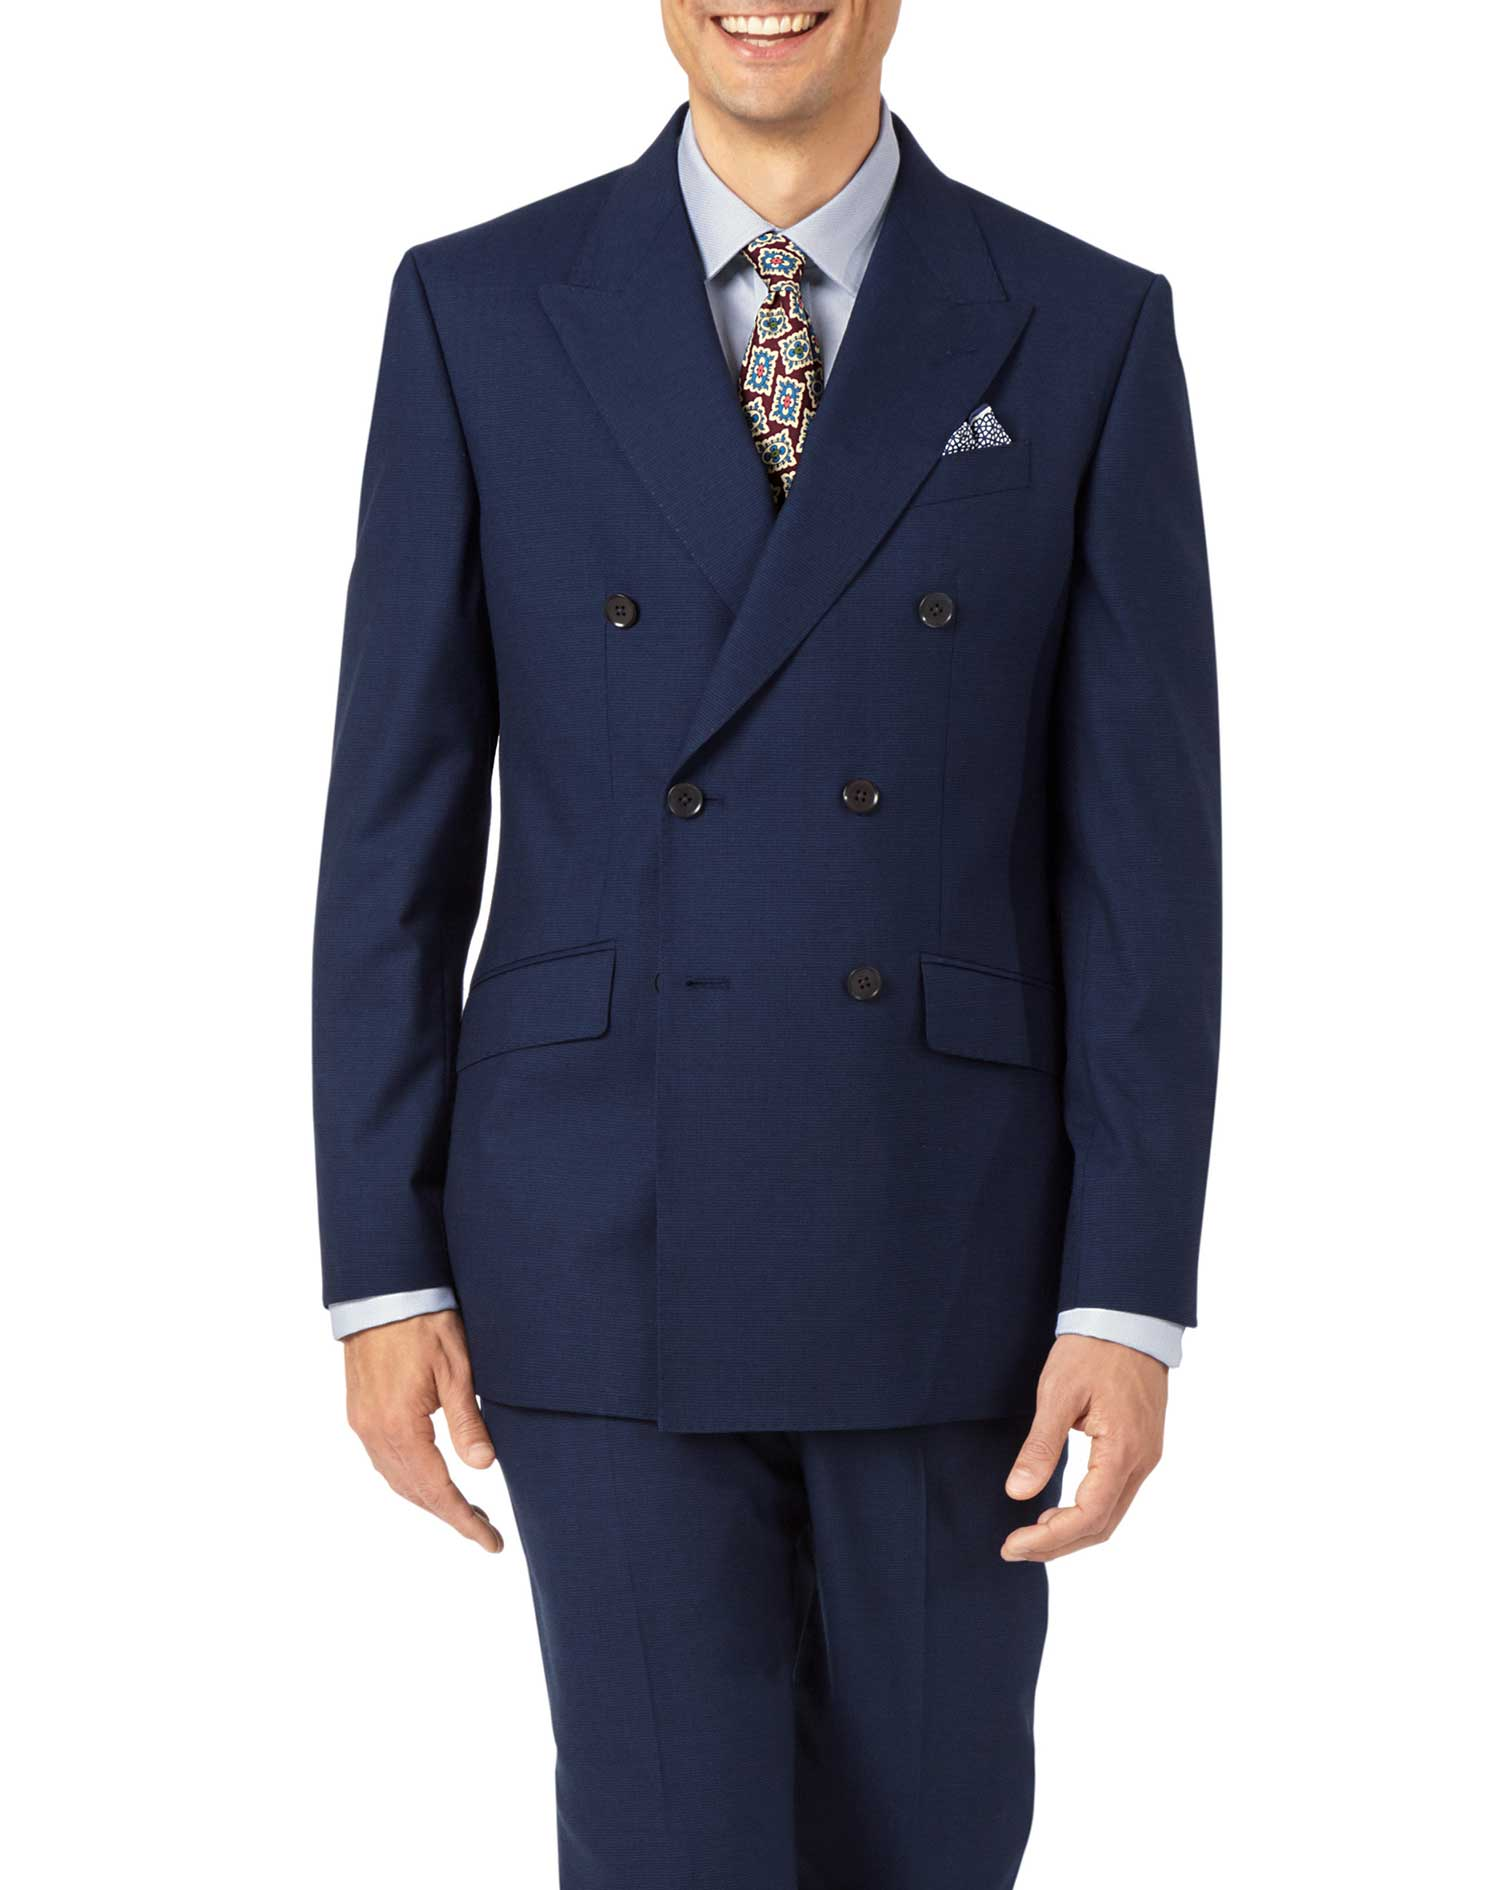 Indigo Slim Fit Panama Puppytooth Business Suit Wool Jacket Size 42 Short by Charles Tyrwhitt